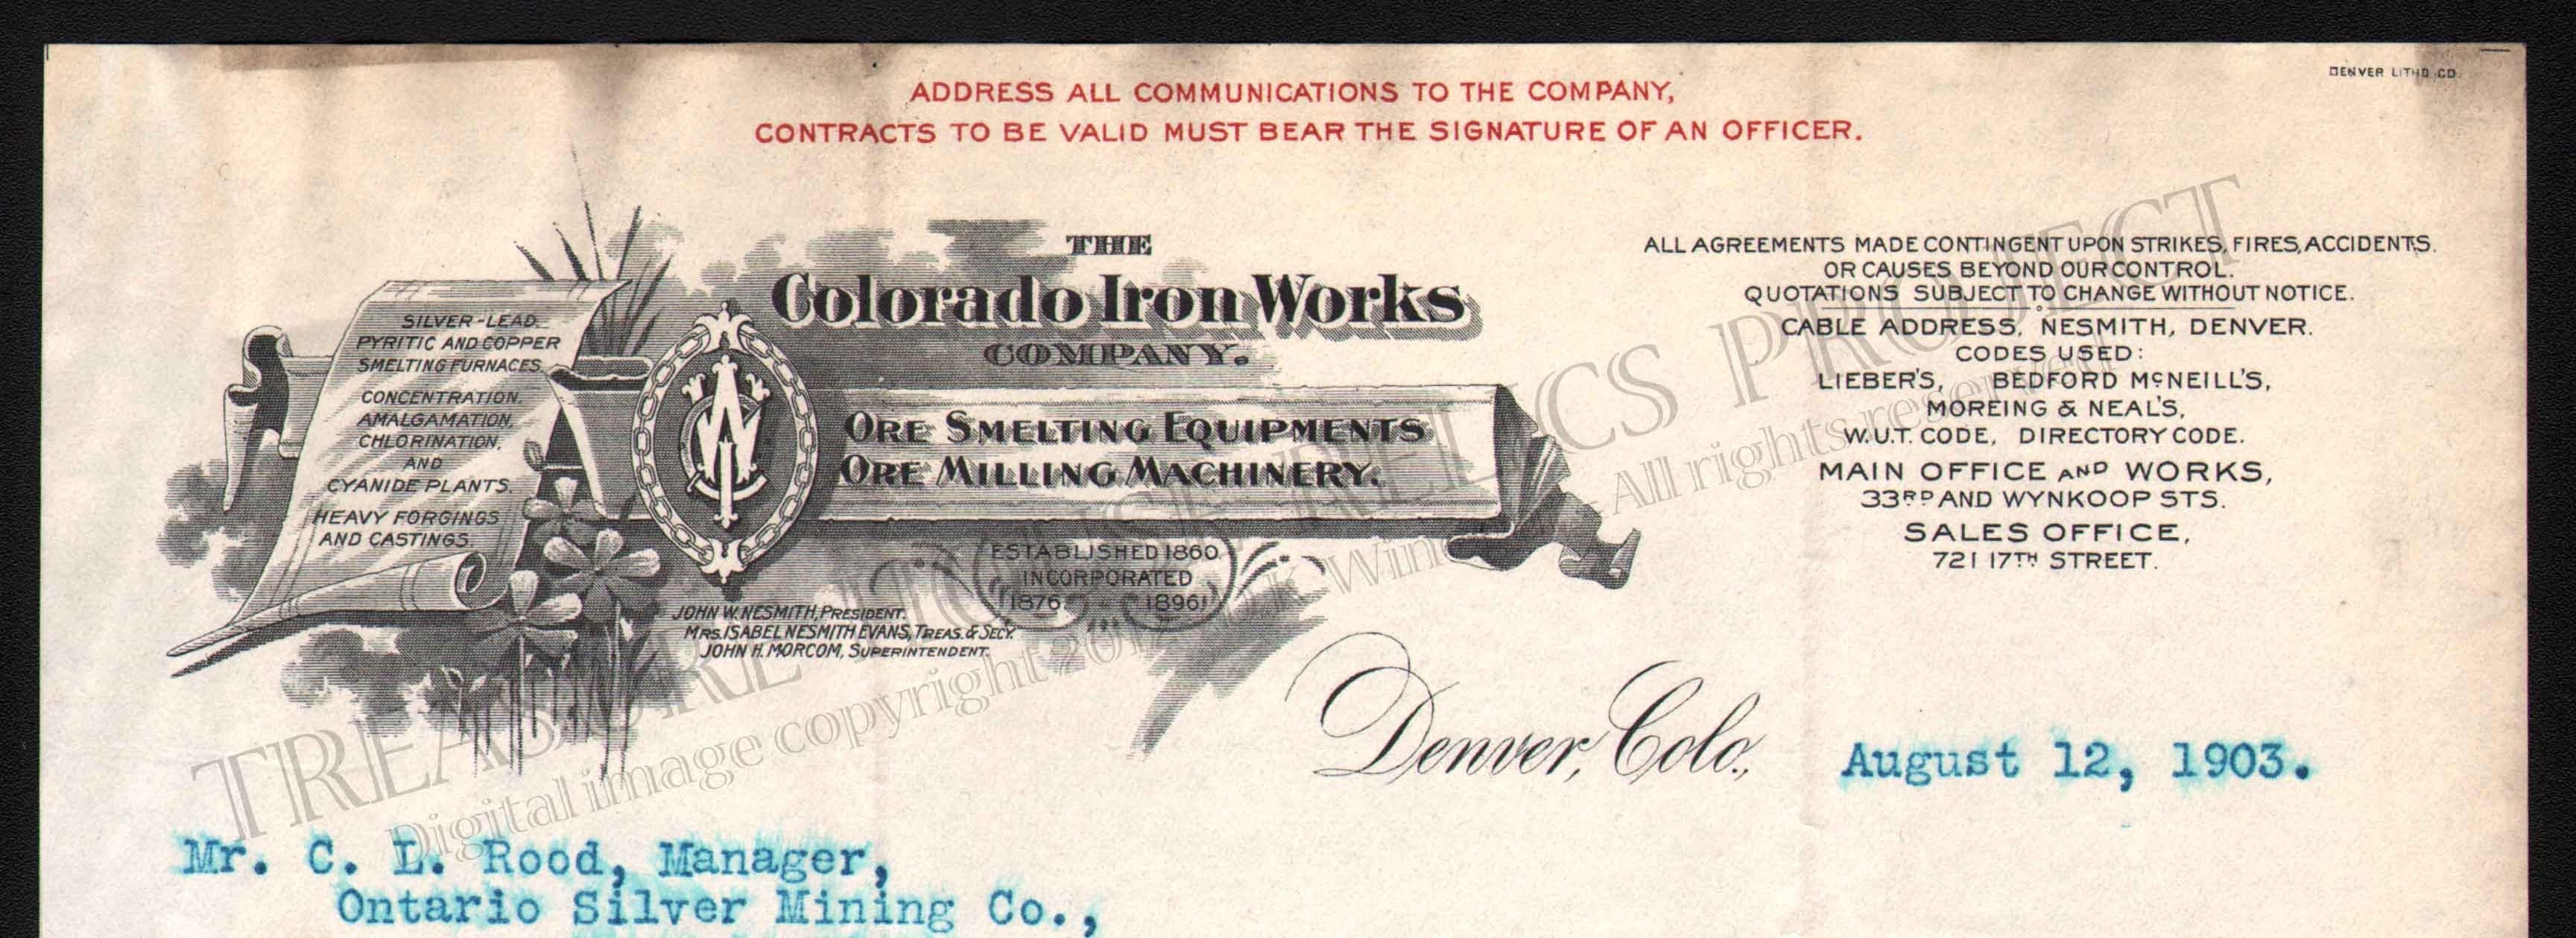 LETTERHEAD/LETTERHEAD_DEPARTMENT_OF_THE_INTERIOR_1903_P1_crop_emboss.jpg